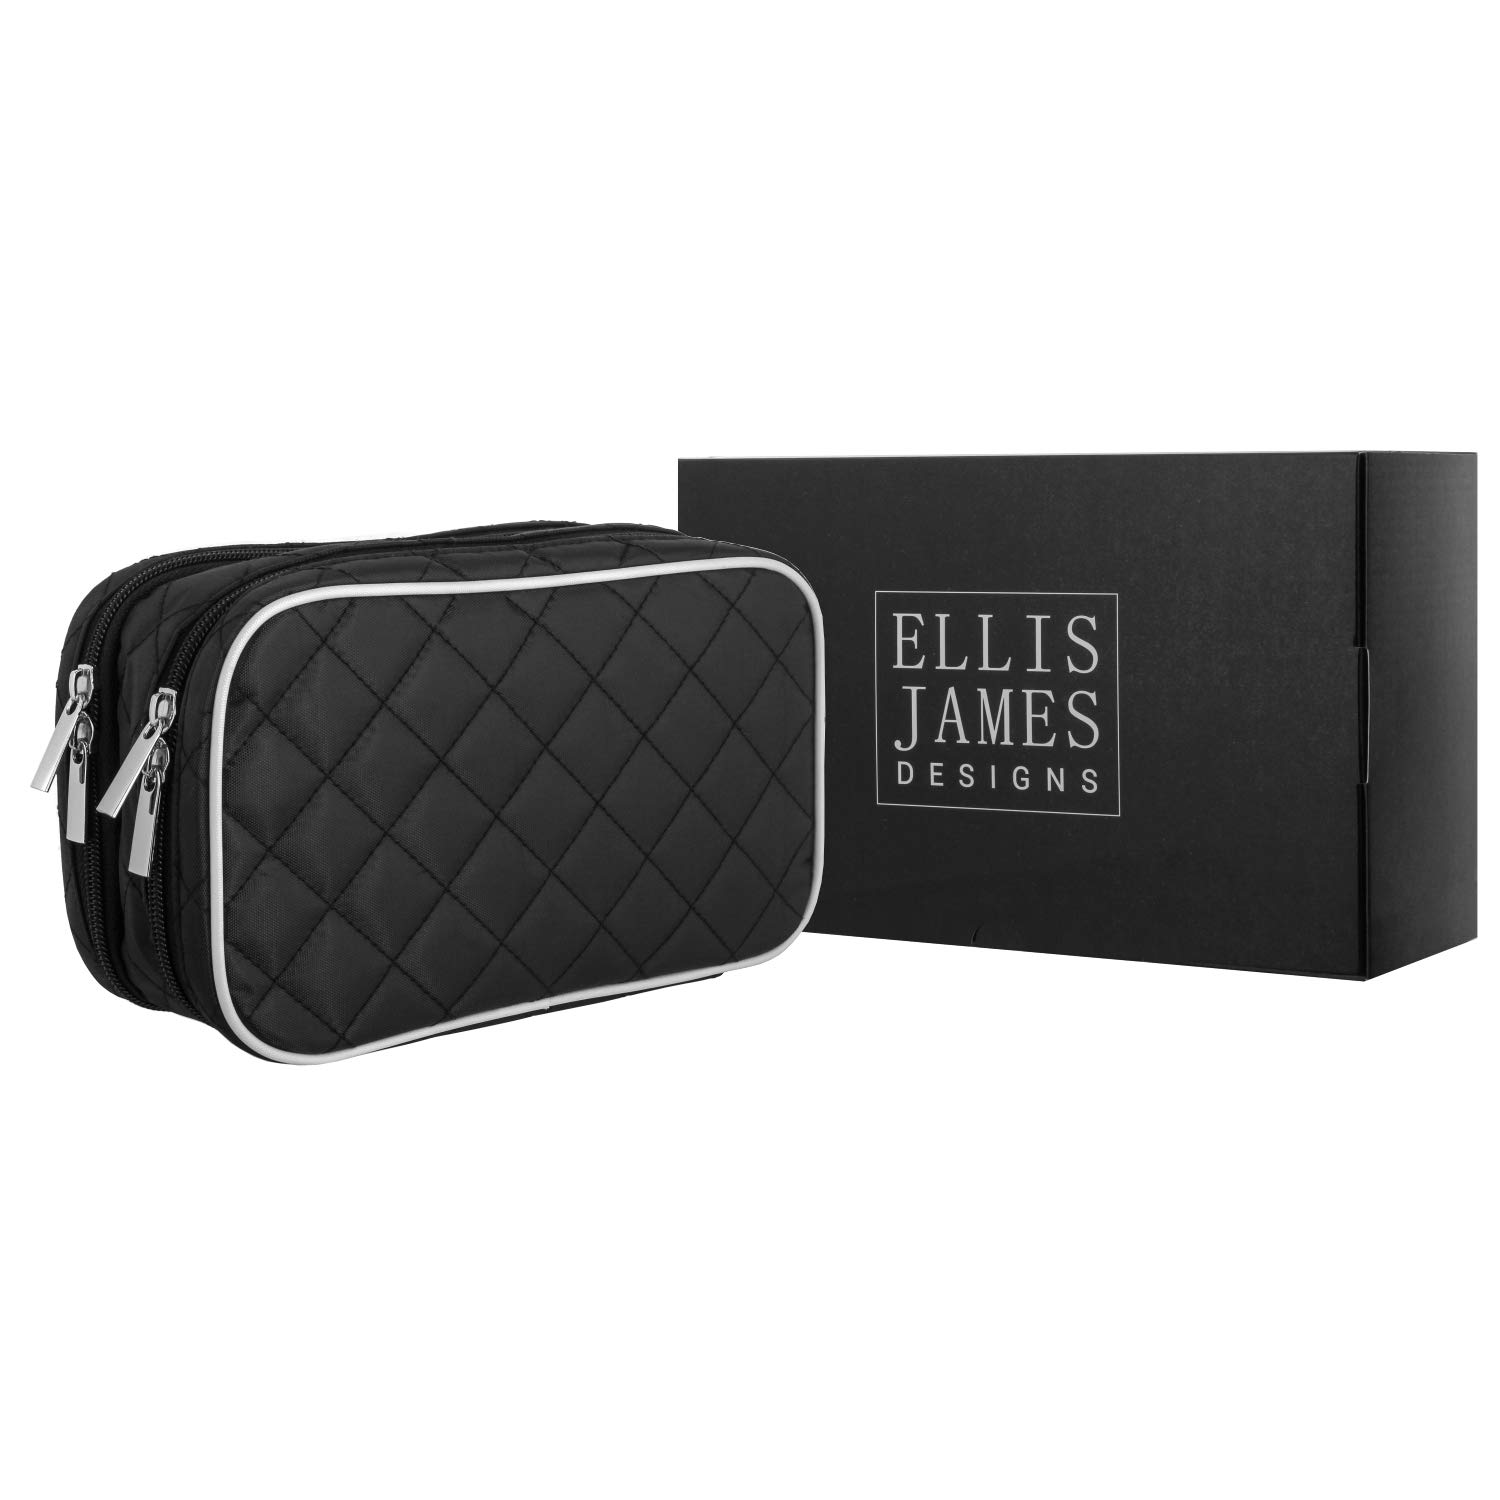 Ellis James Designs Quilted Travel Jewellery Organiser Bag Case - Black - with Makeup Pouch Compartments Soft Padded Travel Jewellery Roll 2 and Make Up Bags 2-in-1 Cosmetic Cases with Necklace Holder ELJ0052